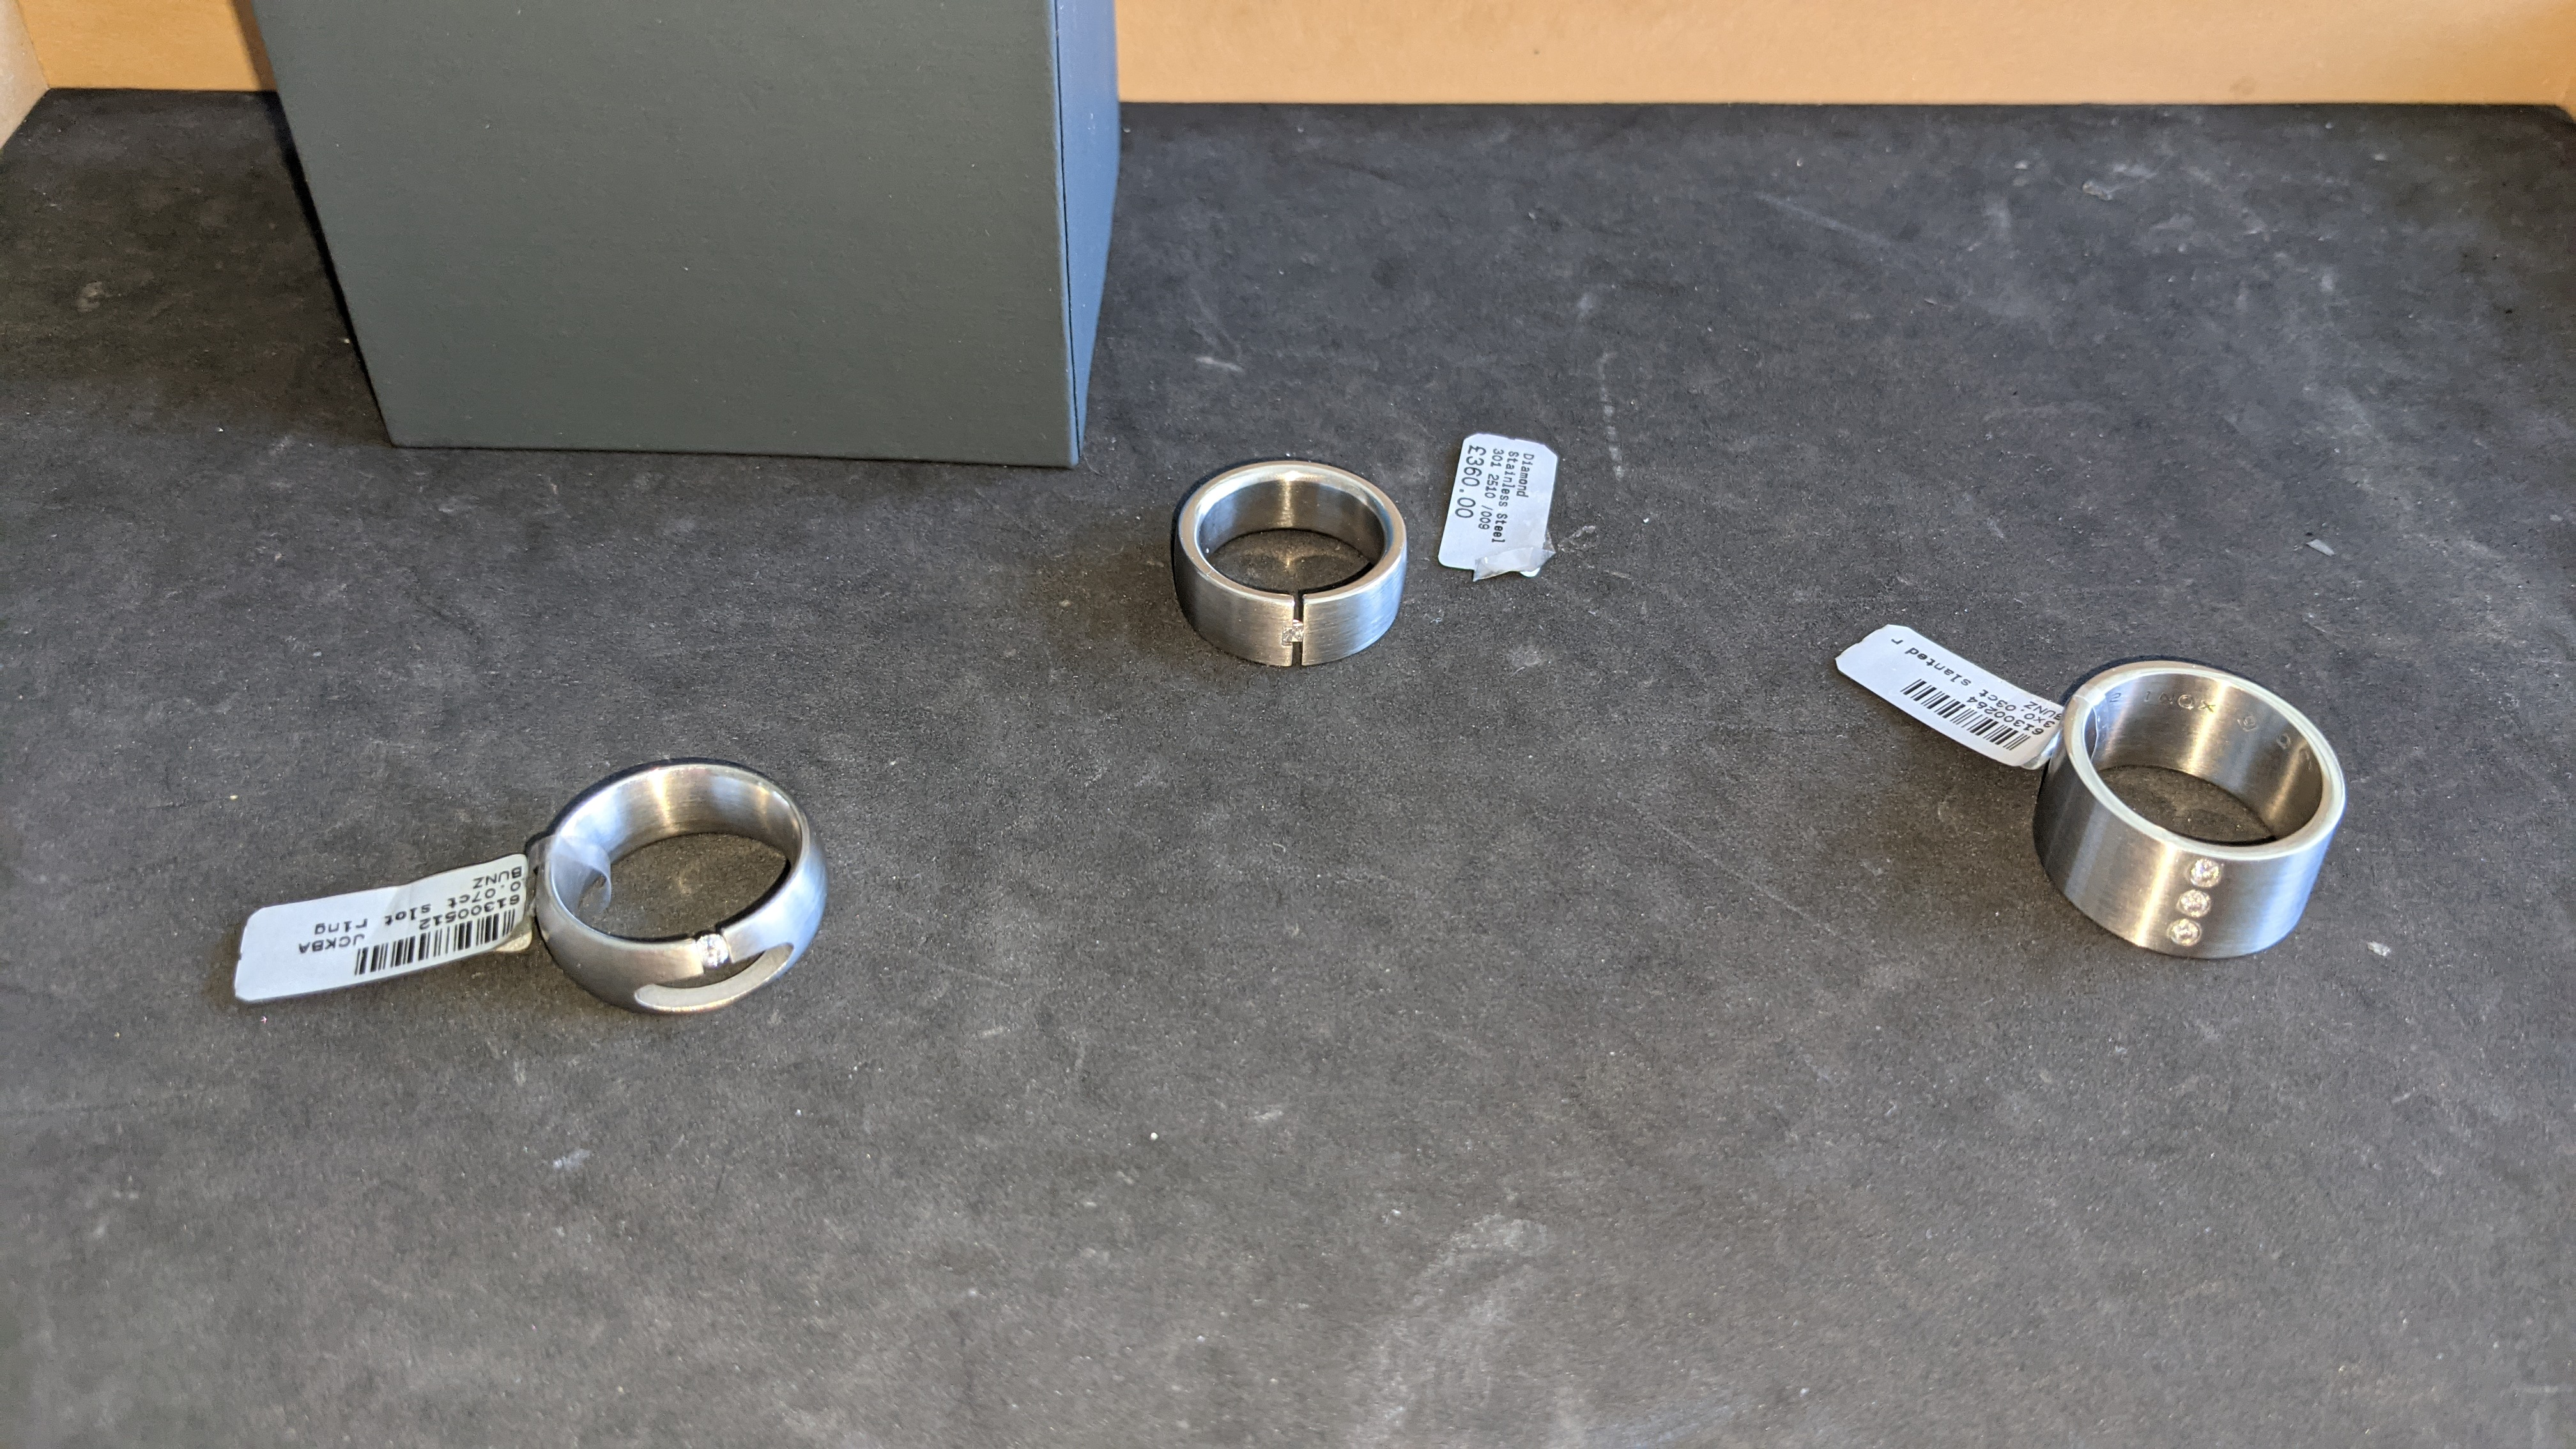 3 off assorted stainless steel & diamond rings with RRPs of £360, £378 & £379. Total RRP £1,117